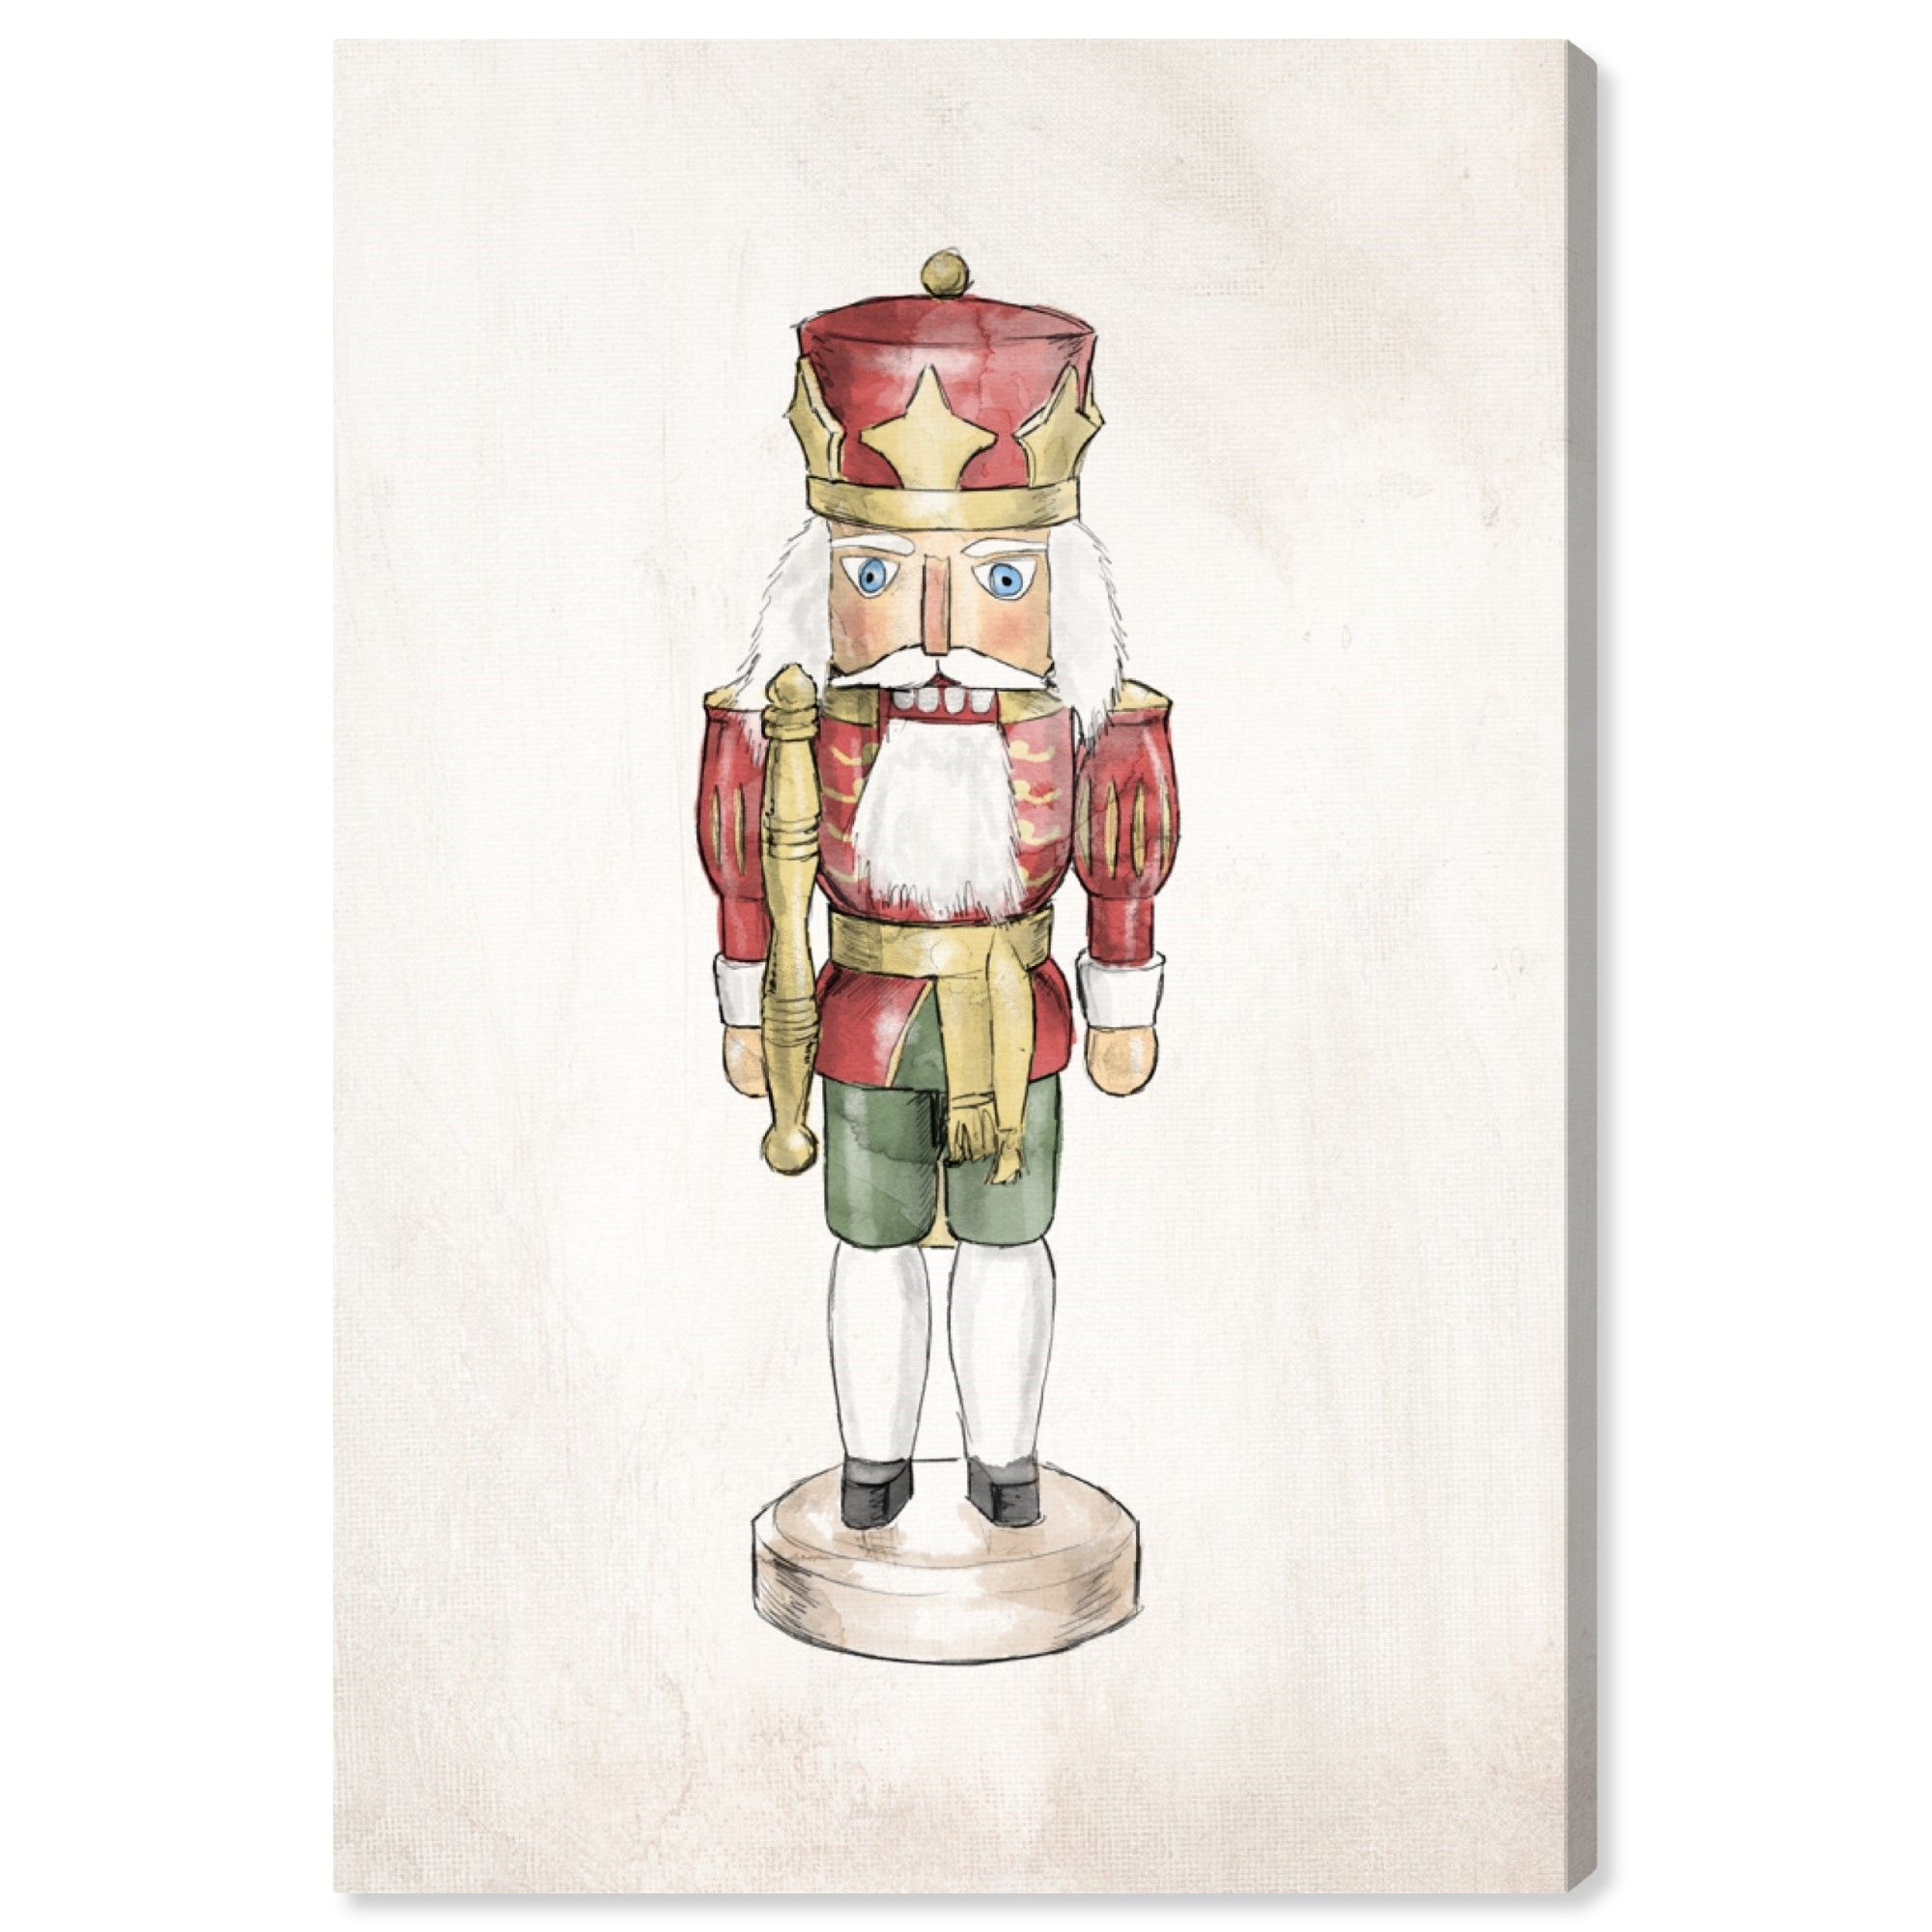 Runway Avenue Holiday And Seasonal Wall Art Canvas Prints Nutcracker Iii Holidays Red White Walmart Com In 2020 Canvas Wall Art Contemporary Wall Art Canvas Prints Canvas Wall Art